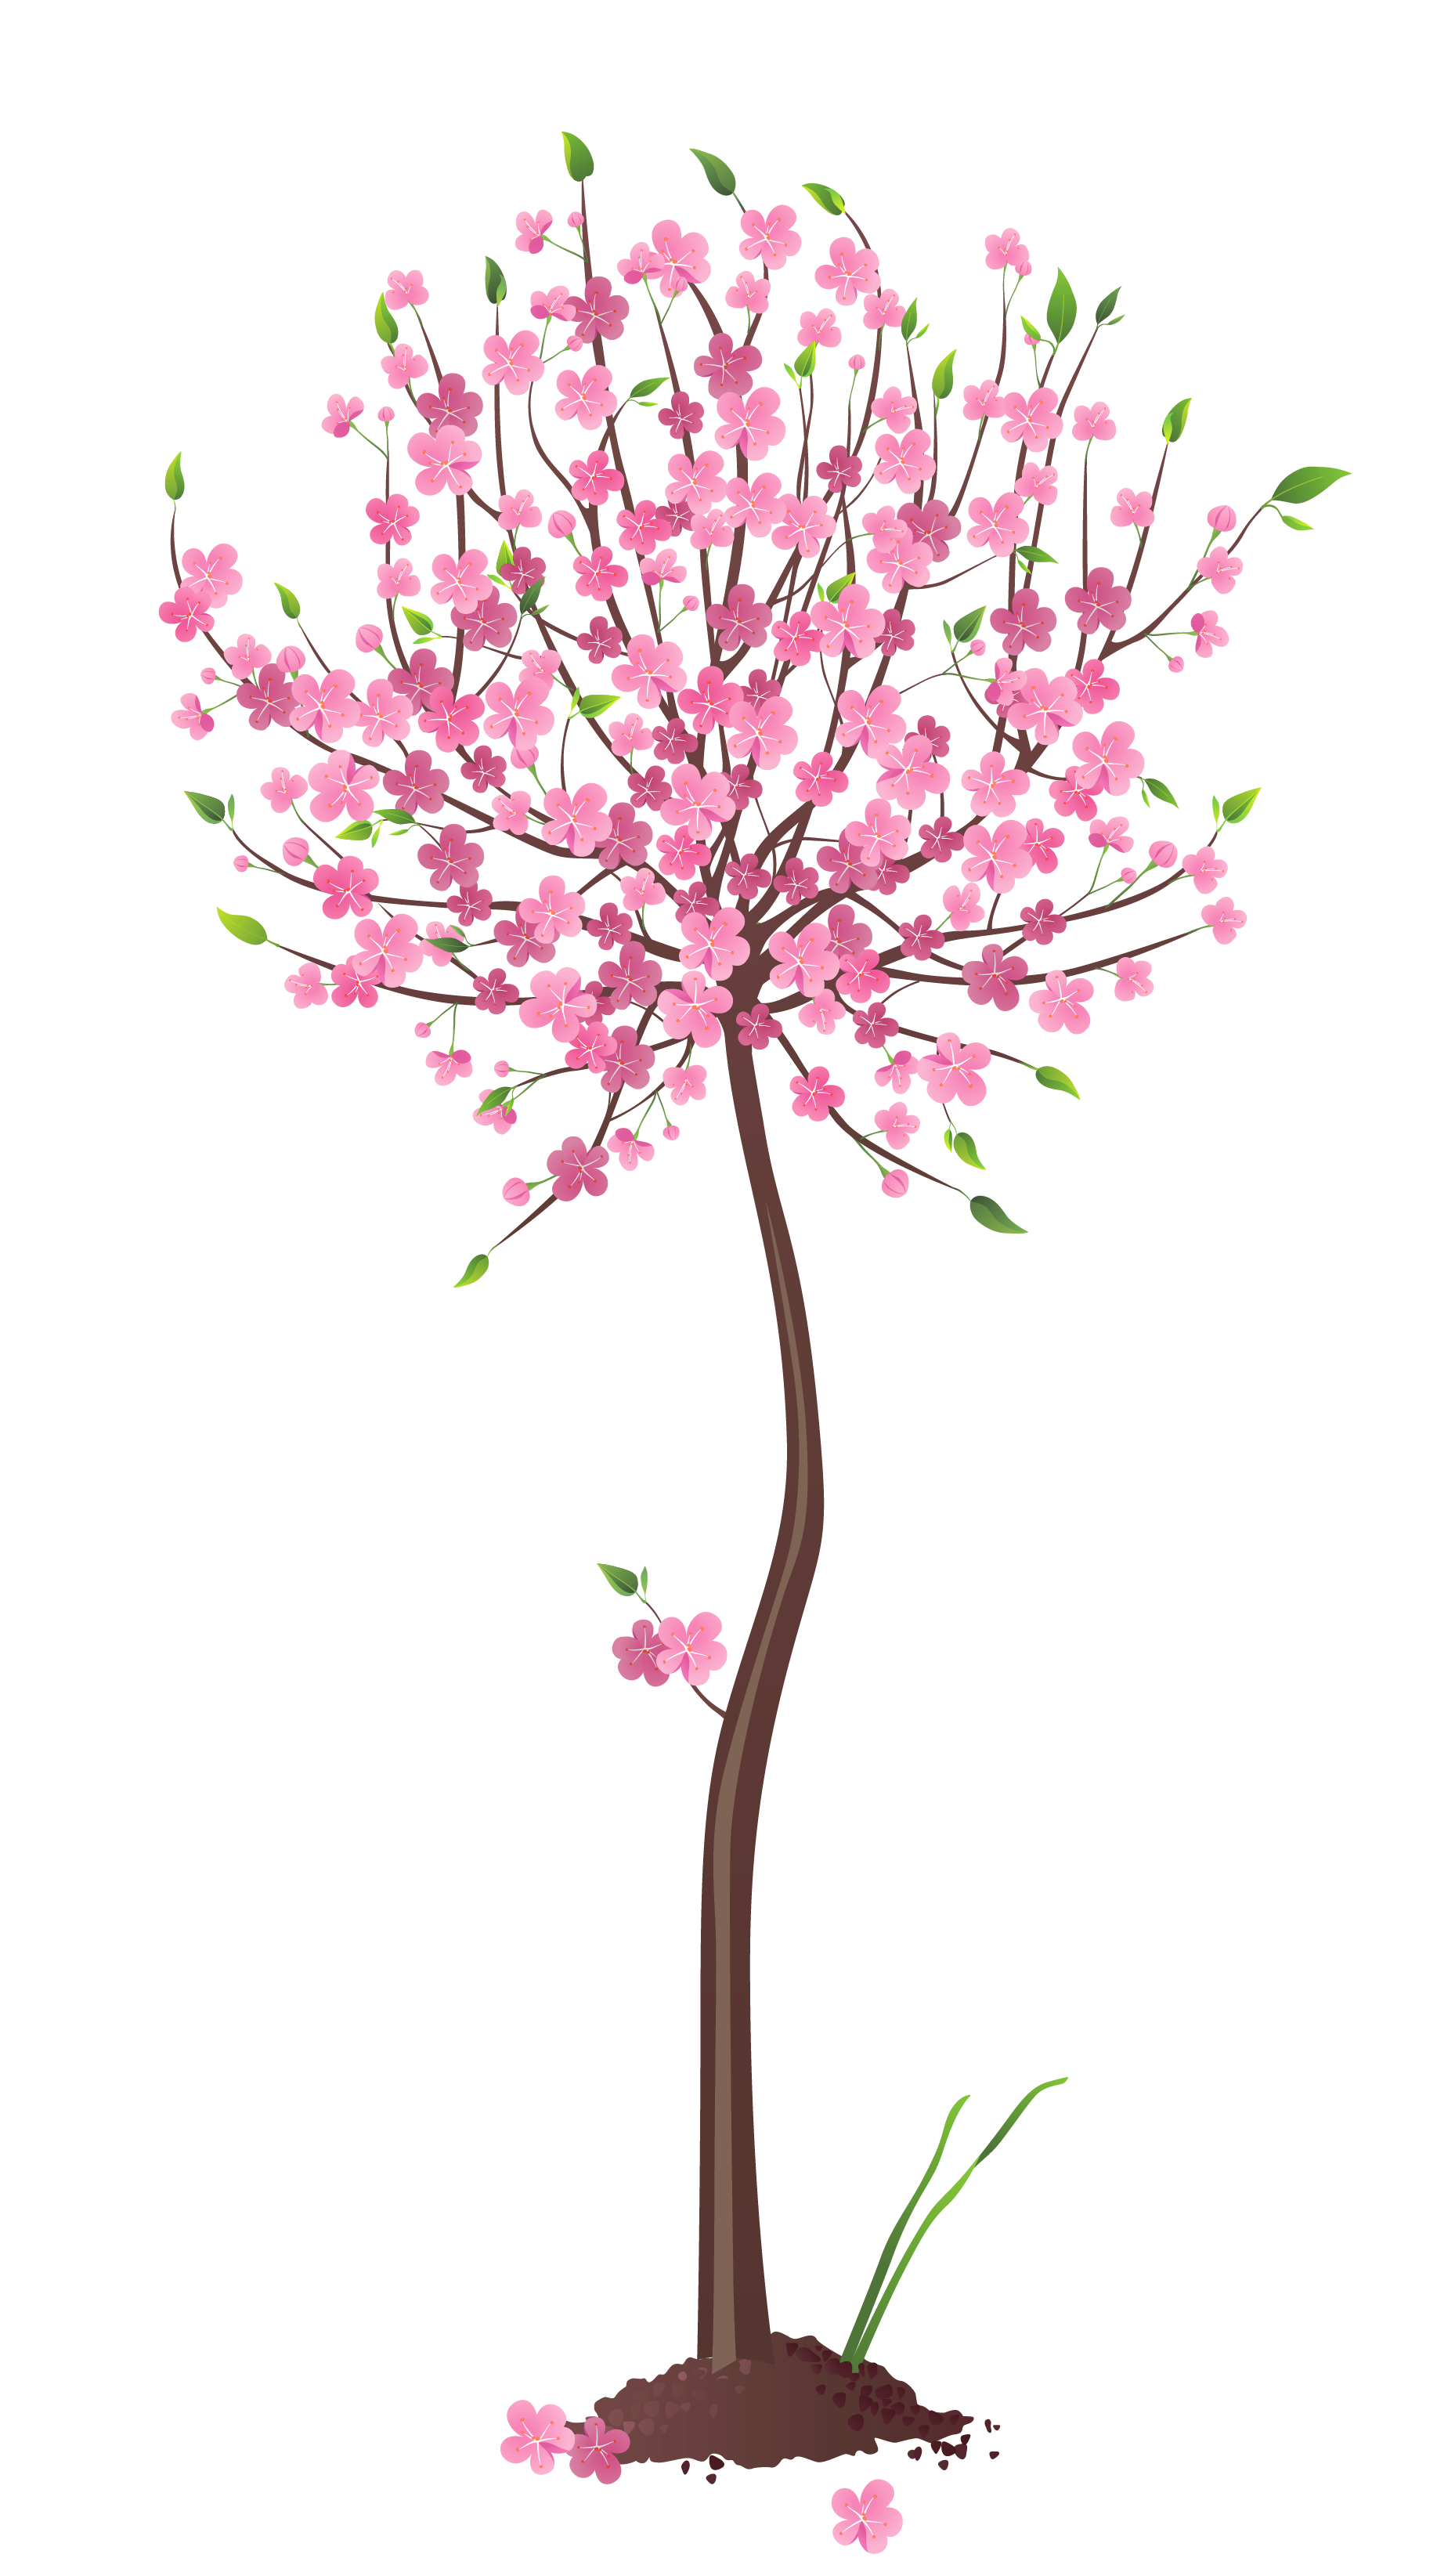 Tree in spring clipart clip art royalty free download Spring Pink Tree PNG Clipart | Gallery Yopriceville - High-Quality ... clip art royalty free download